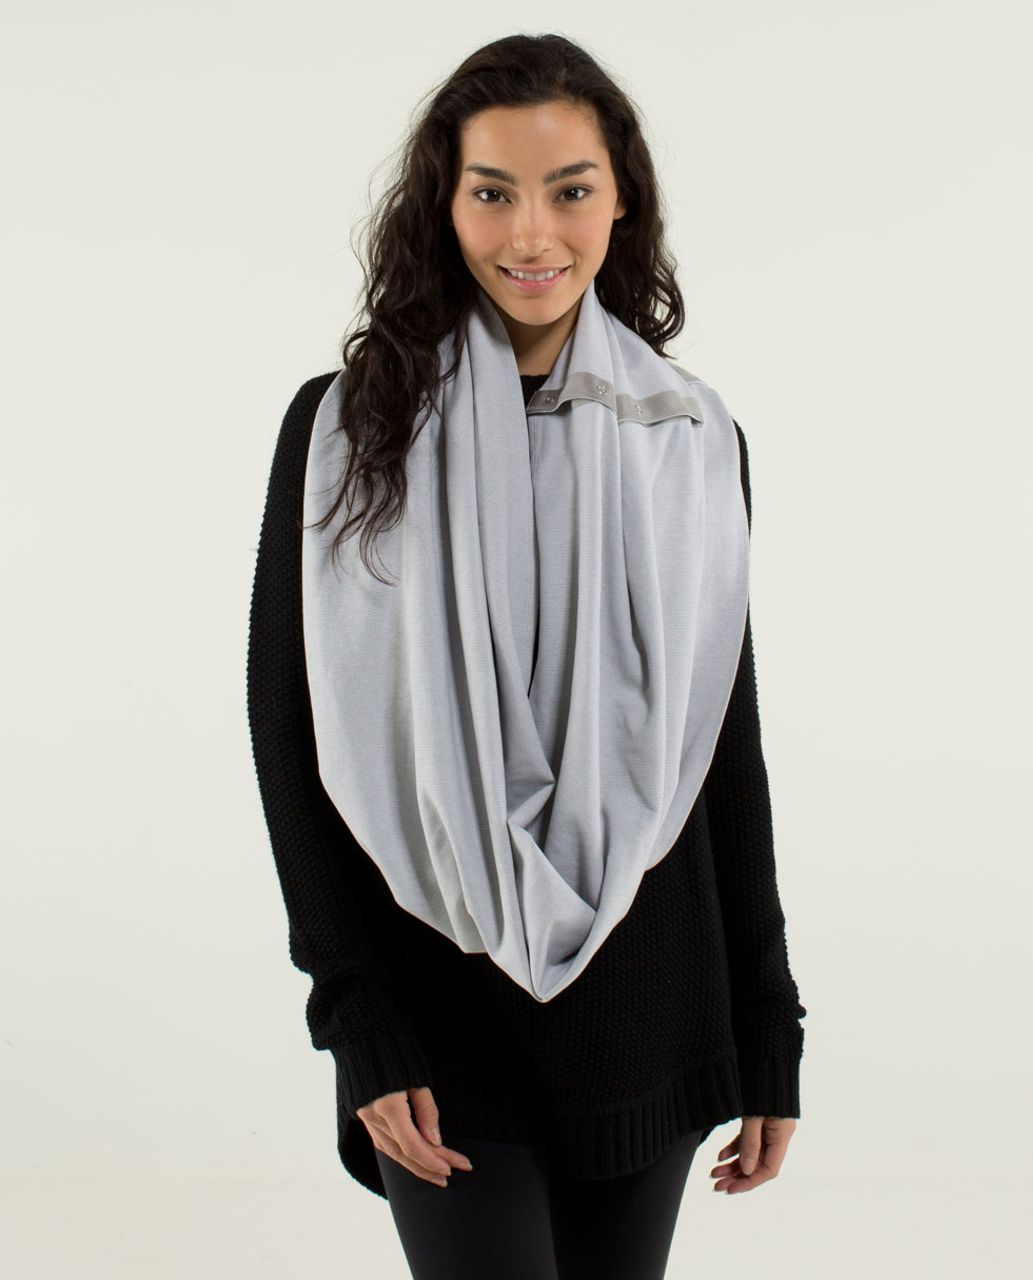 Lululemon Vinyasa Scarf *Rulu - Wee Stripe White Heathered Medium Grey / White